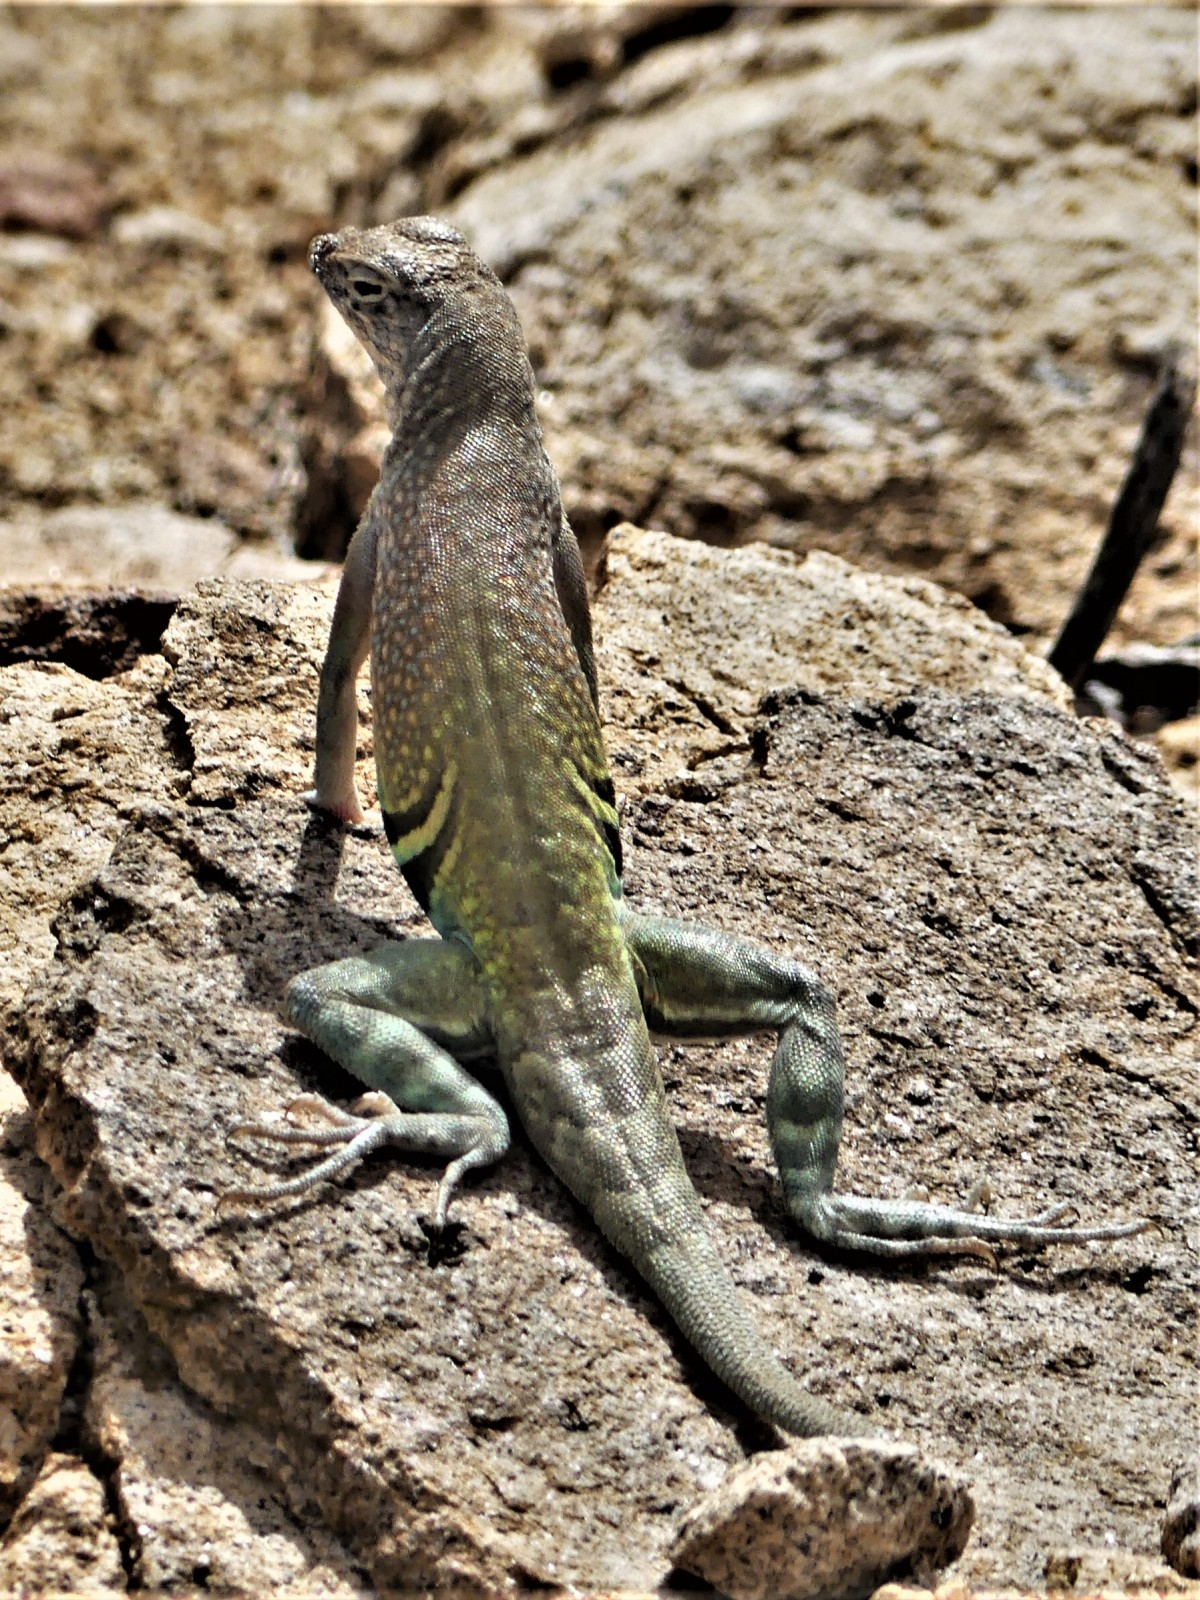 Big Bend lizard